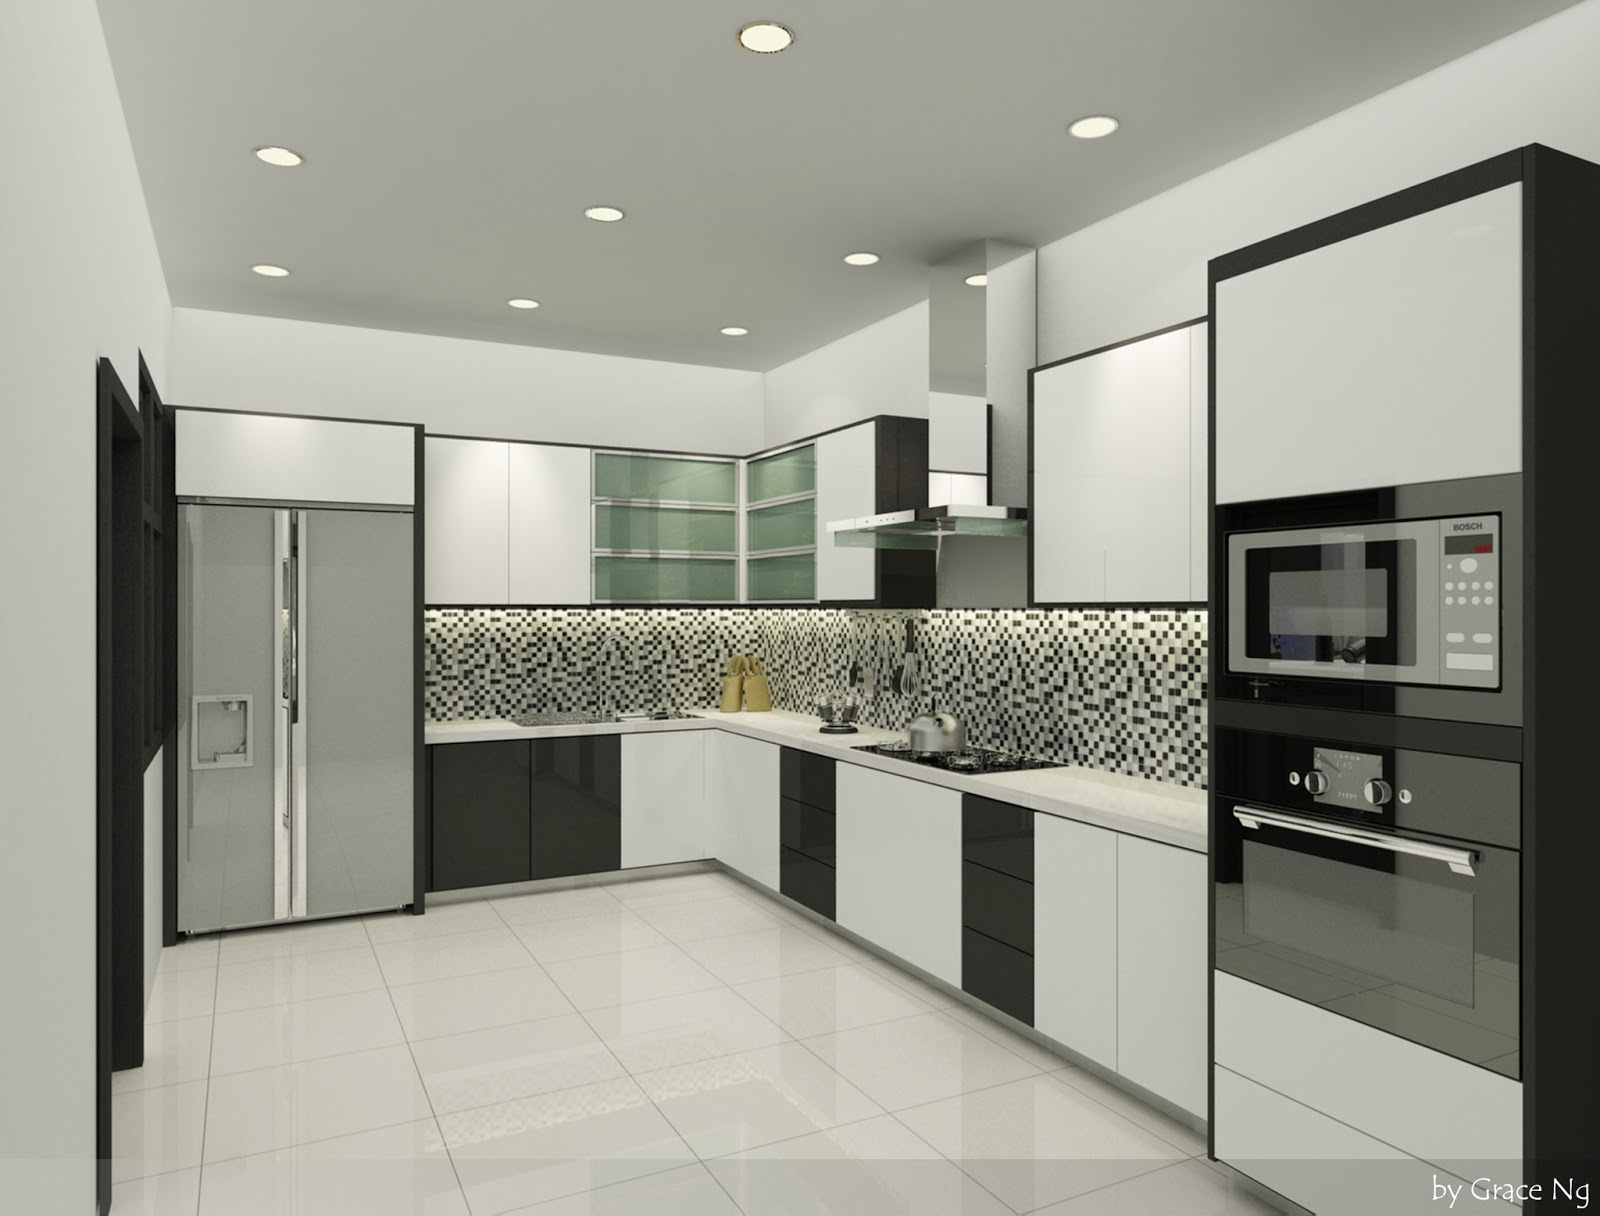 Interior 3d visualized design proposed interior for Dry kitchen ideas